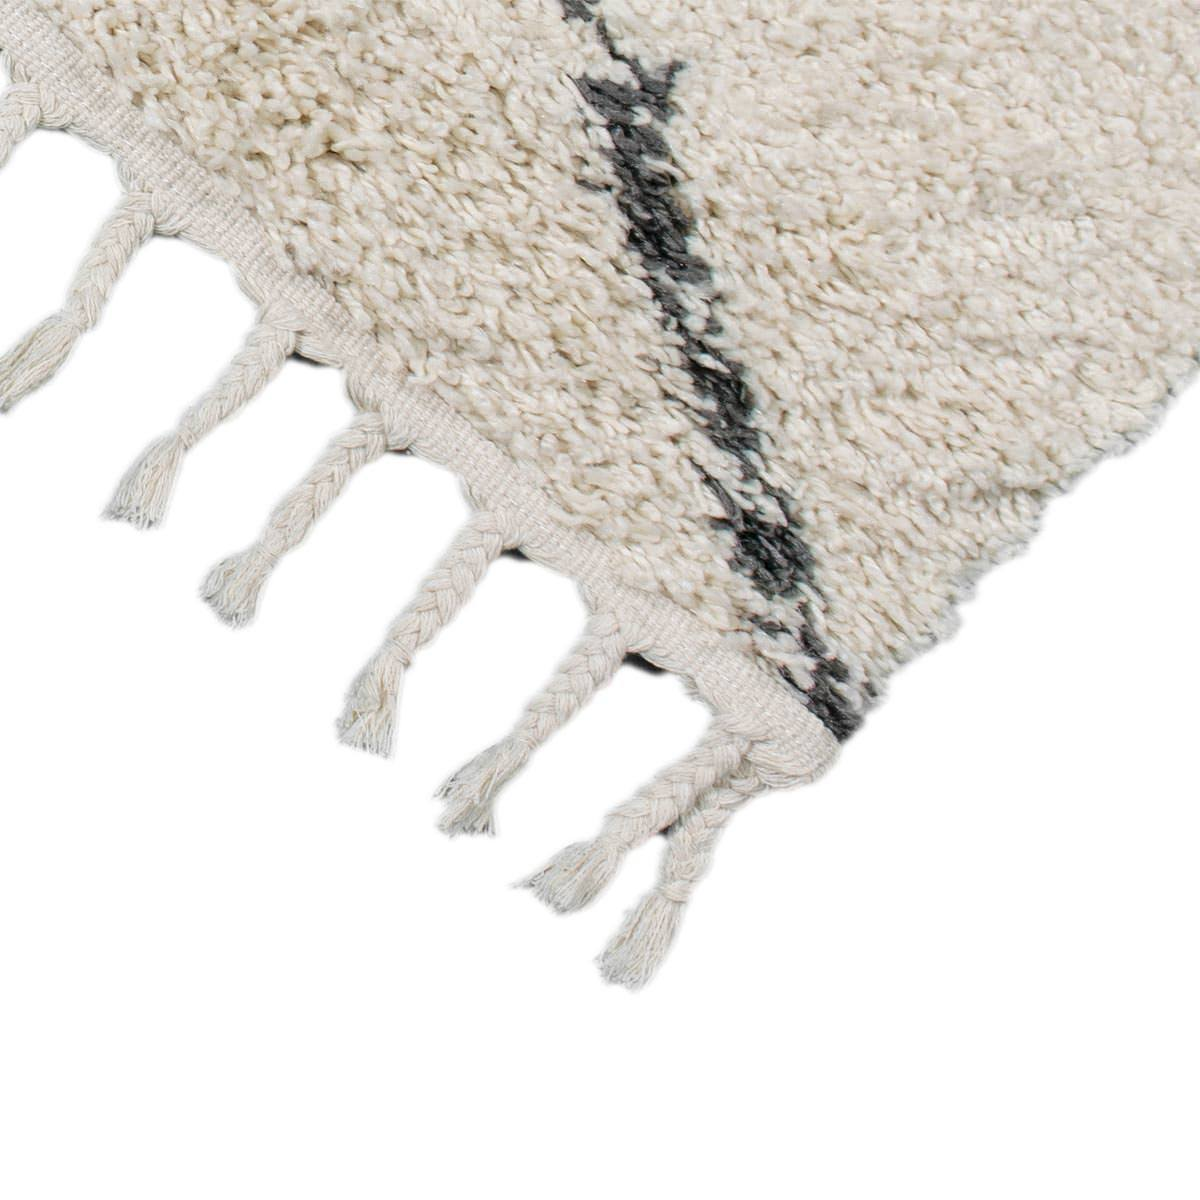 Shaggy Marrakech Rug 05 Cream/Black 4